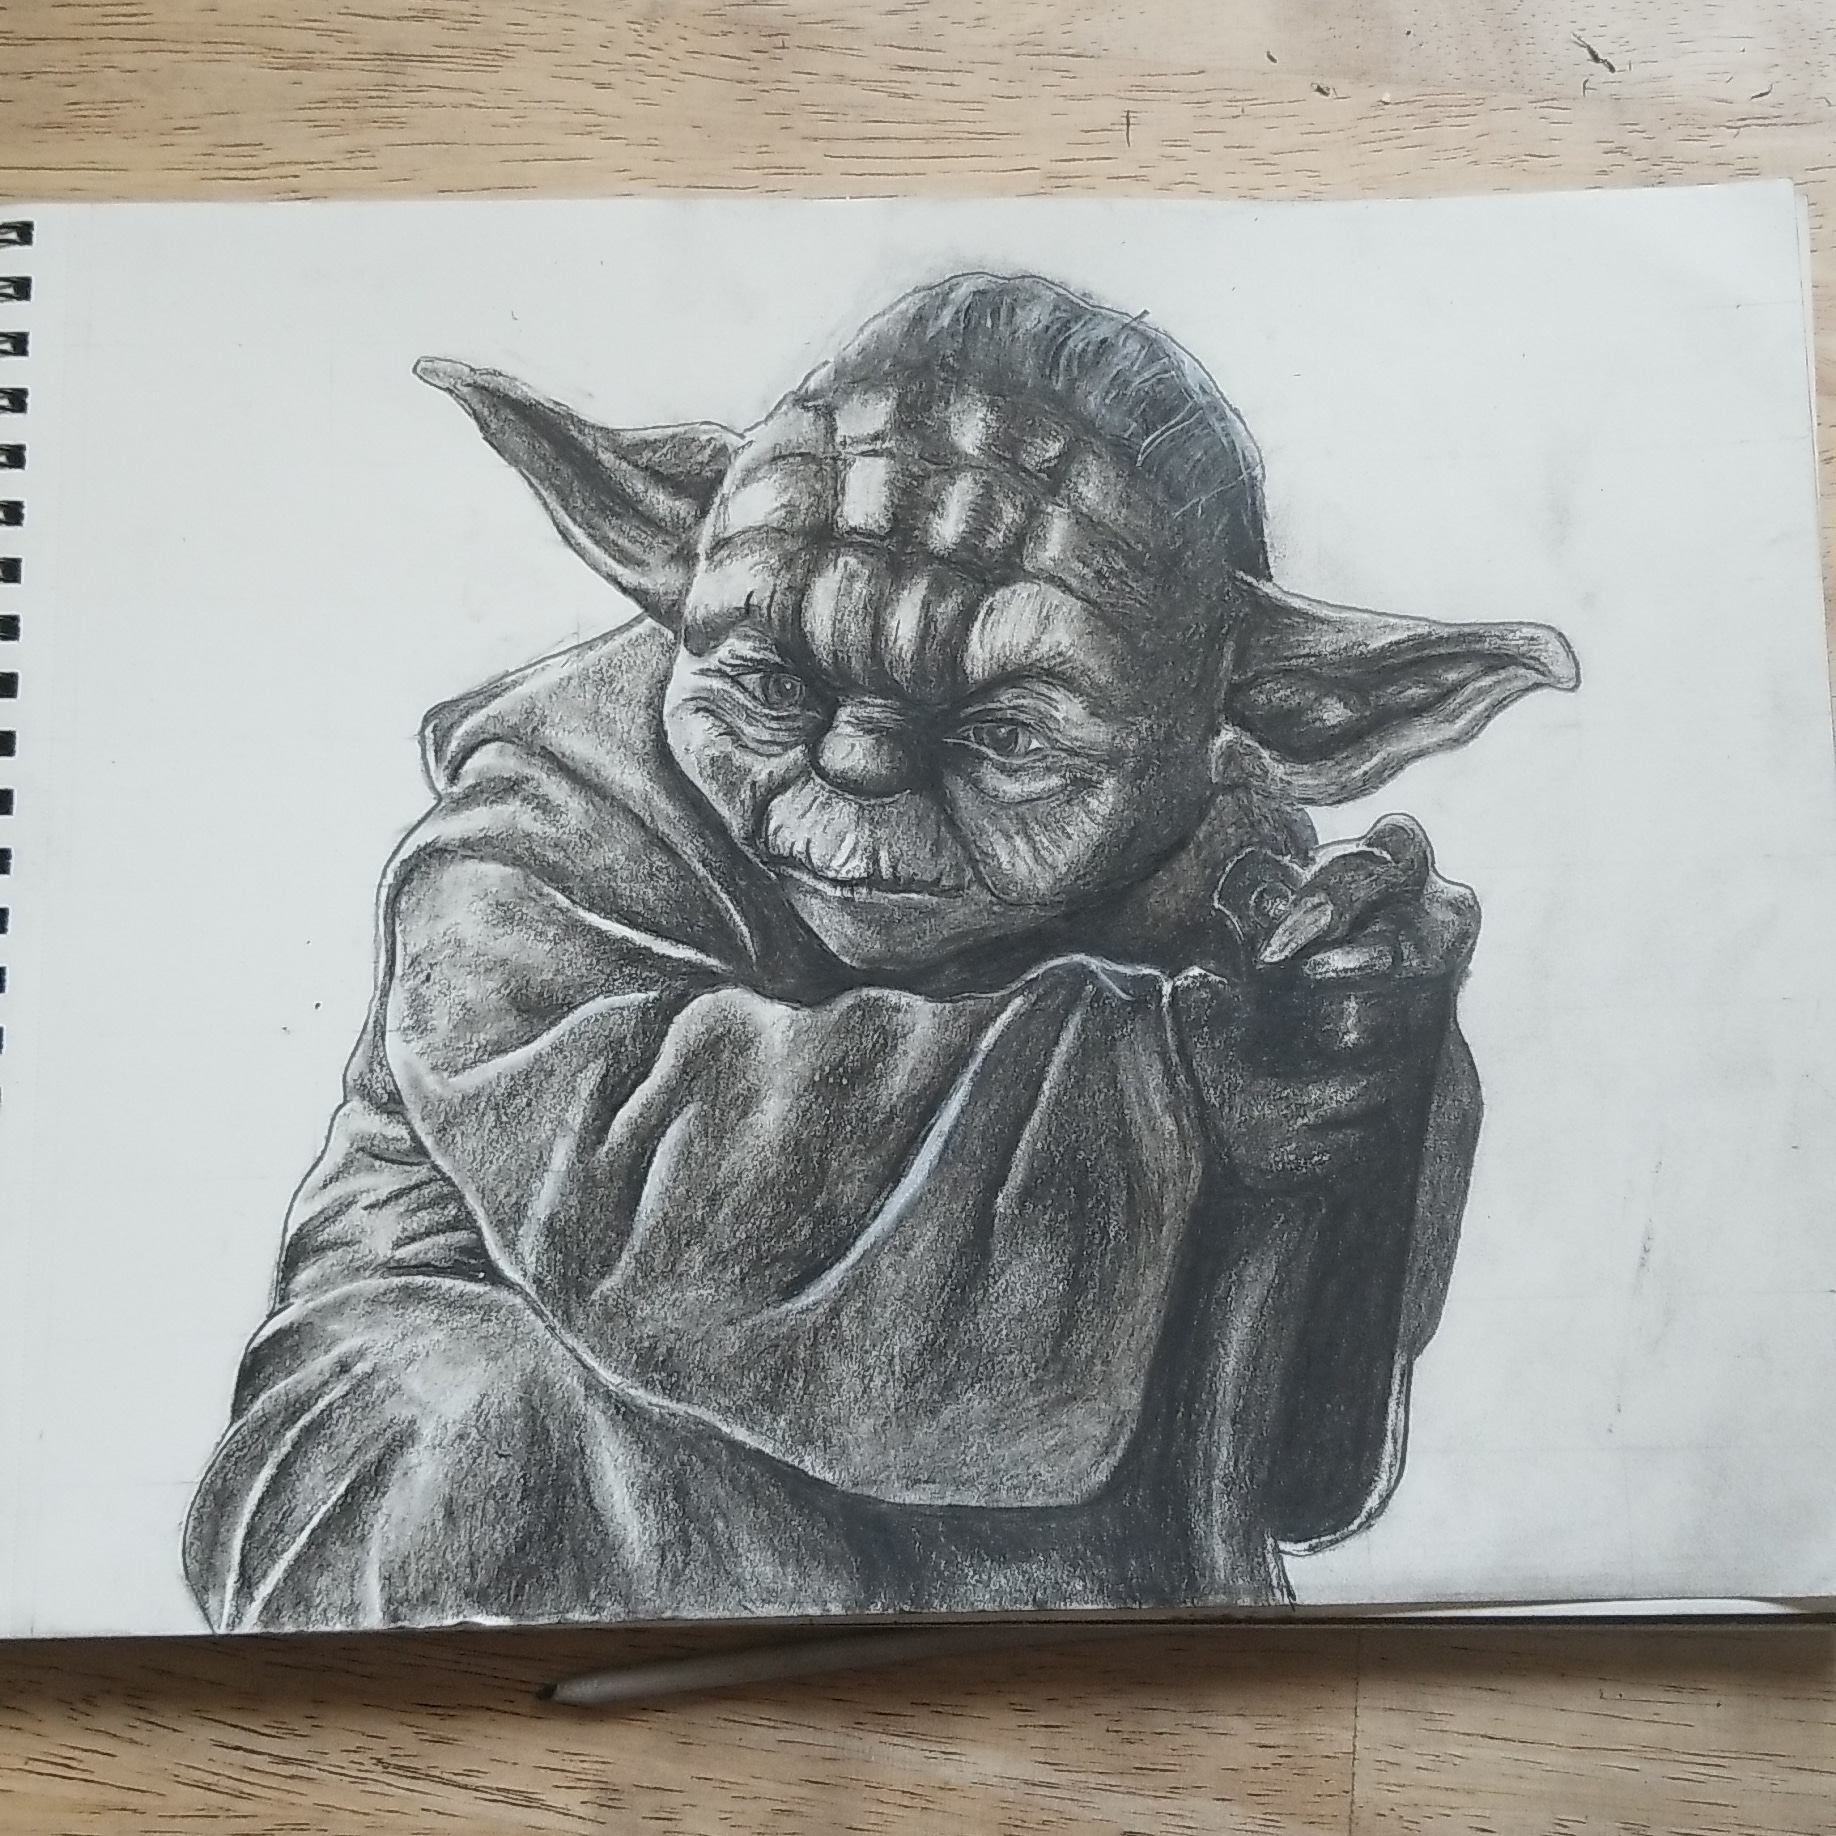 Its been a while since I\'ve done any artwork. Figured I\'d test my hand at Yoda. As they say,